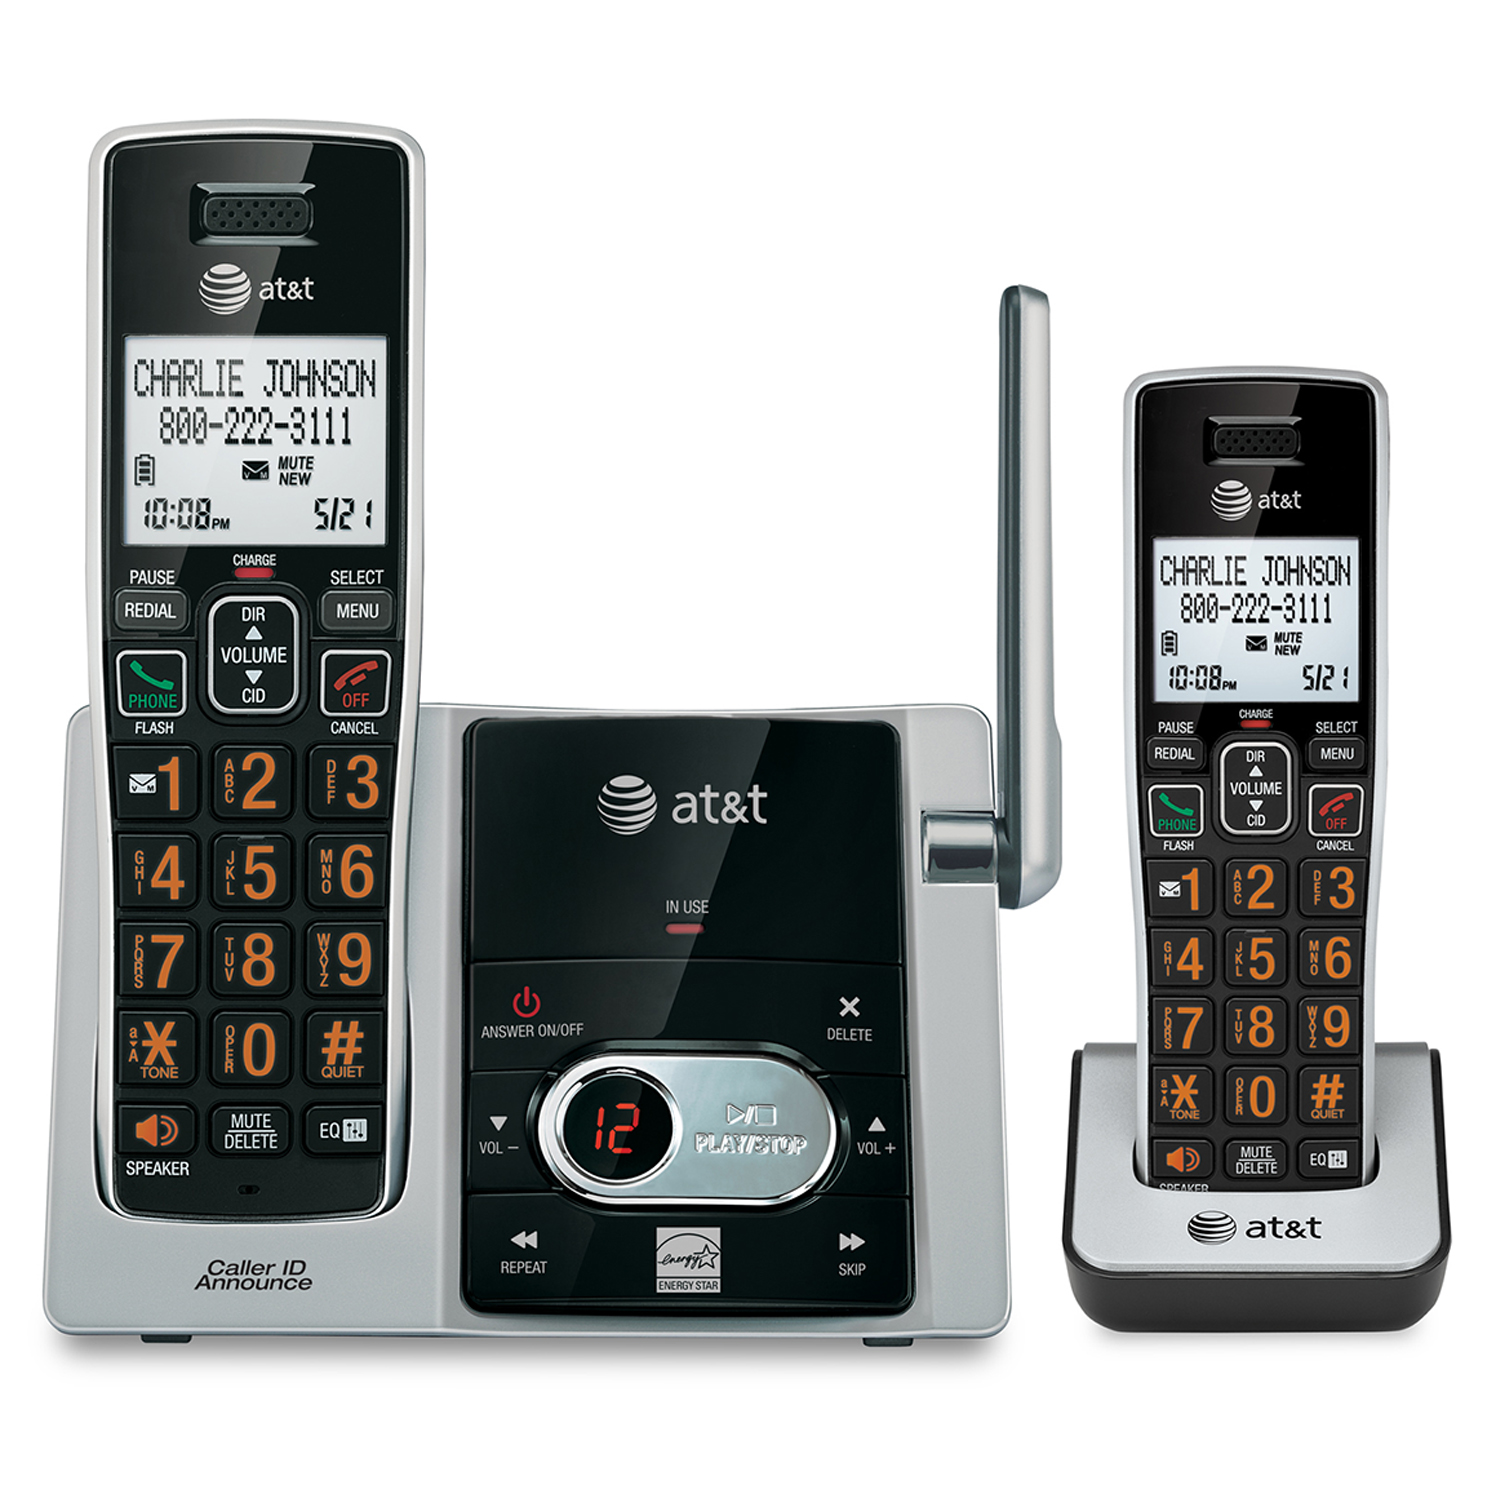 teledynamics product details att cl82213 rh teledynamics com att phone manual cl82313 att phone manual cl82313